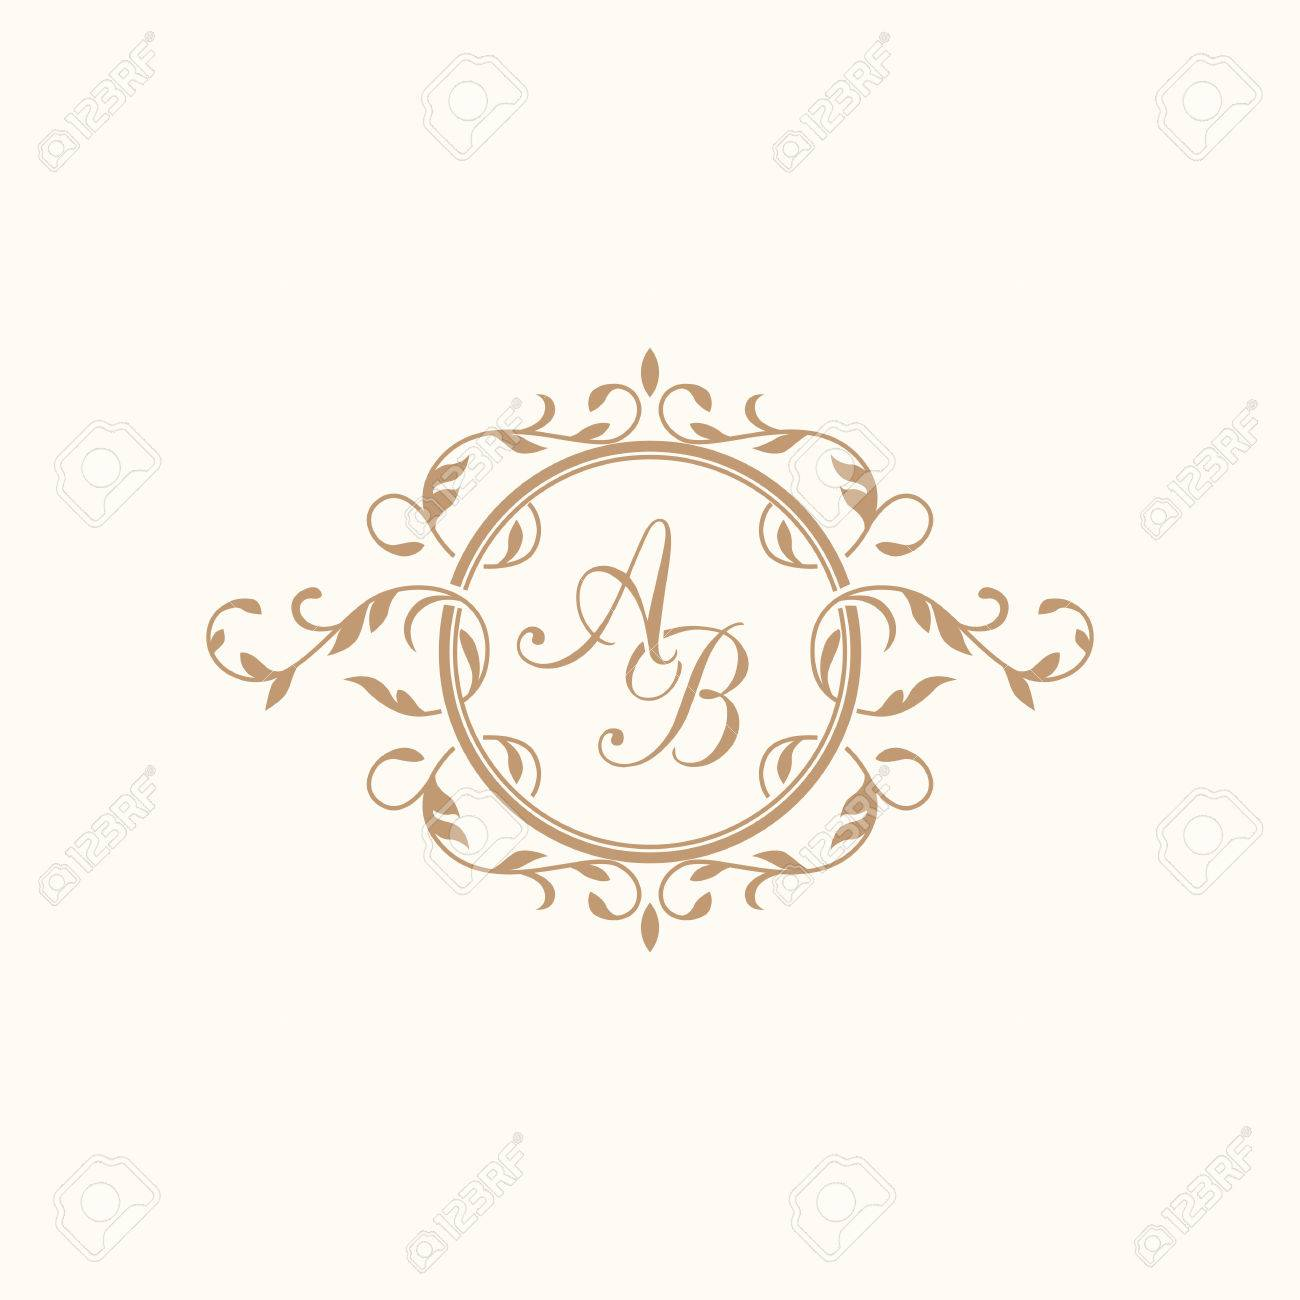 Elegant floral monogram design template for one or two letters..